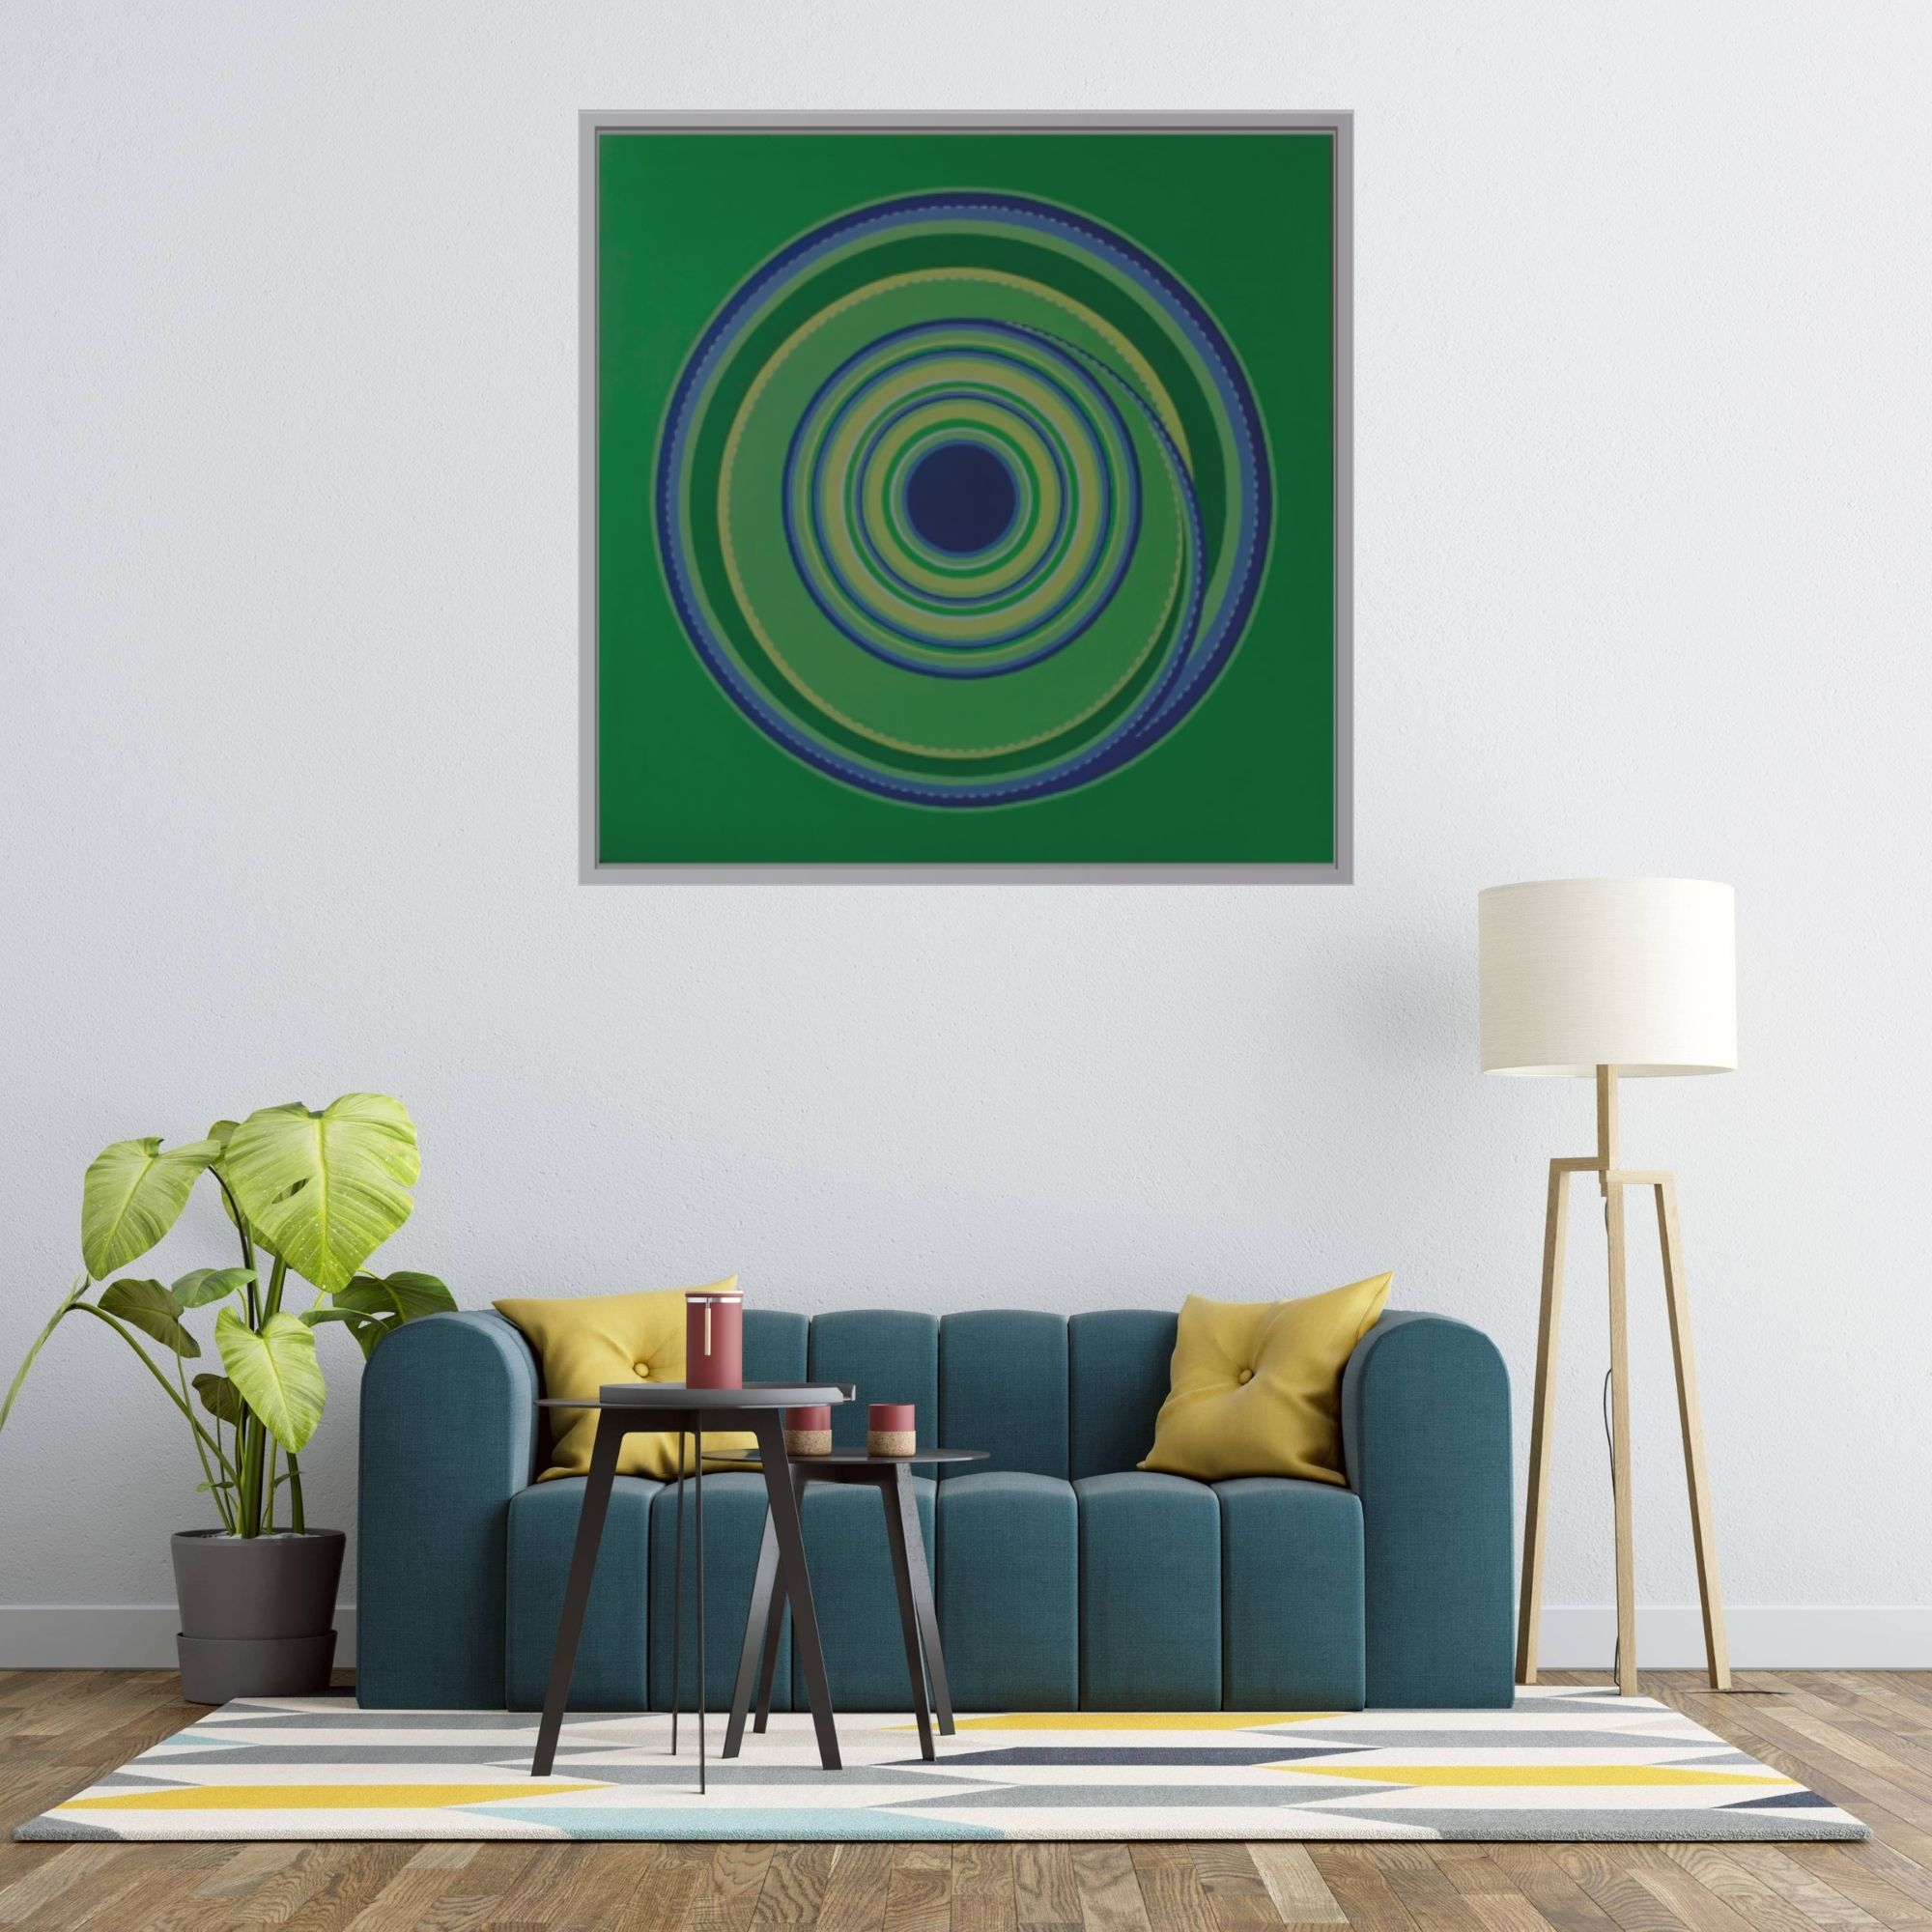 Circle Of Life (Vol 24)_Acrylic on Canvas_24x24 inches